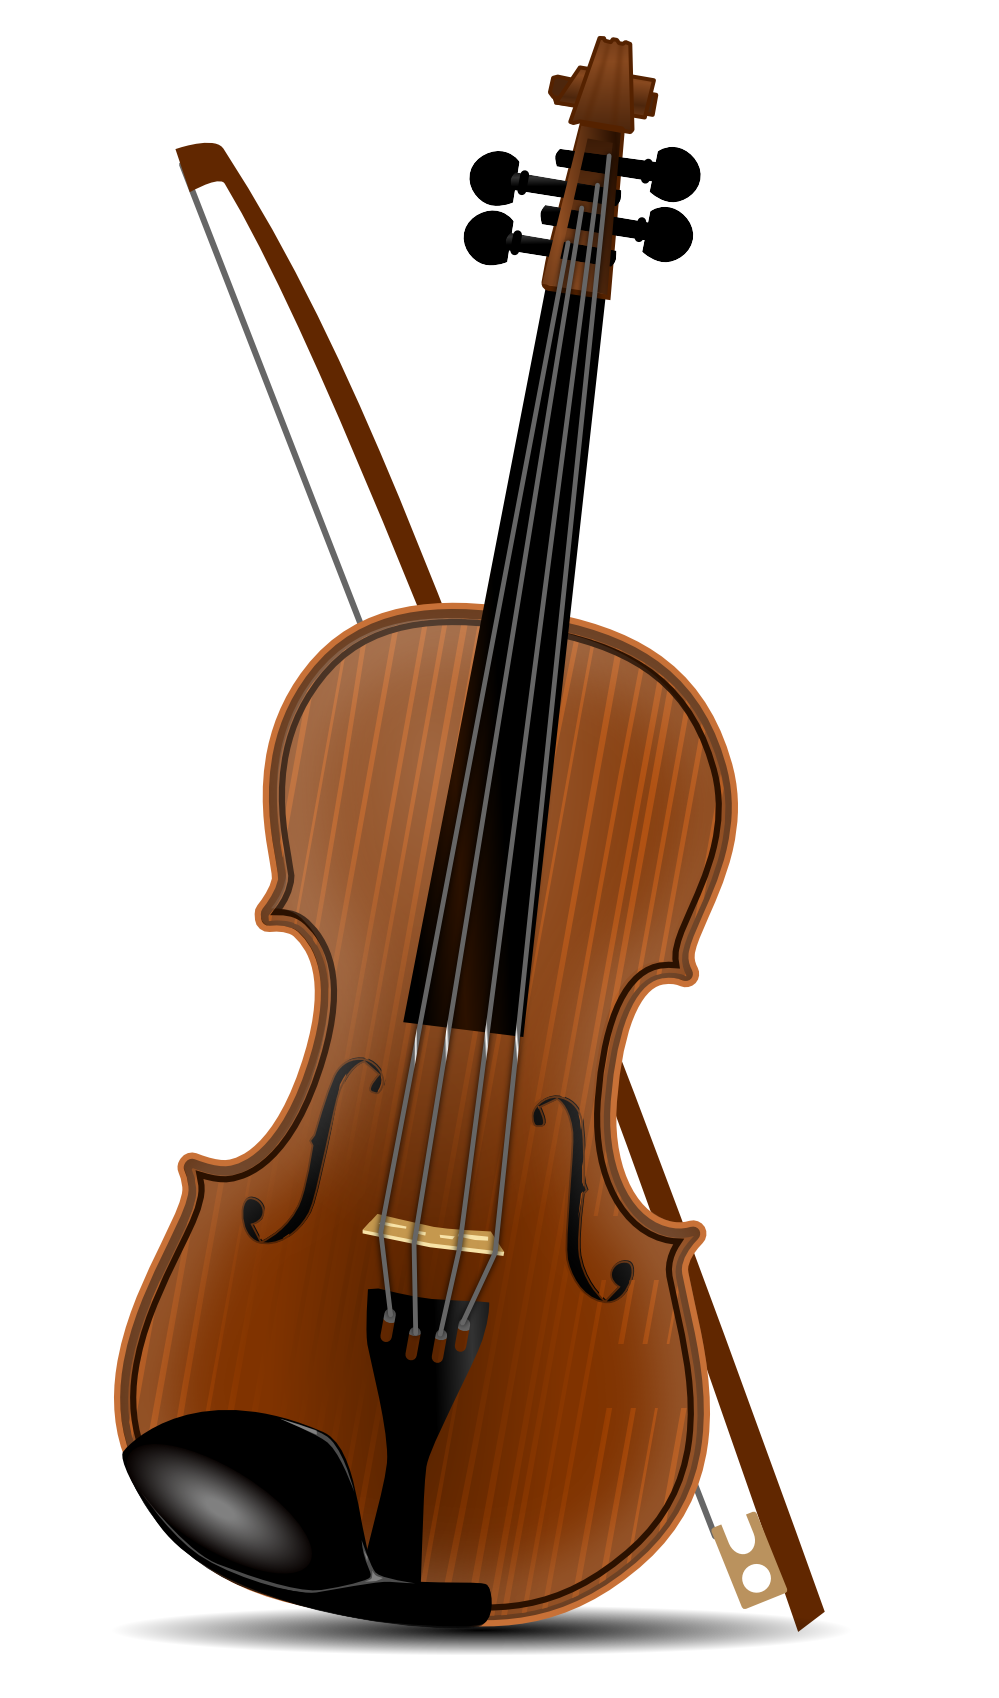 Violin making clipart clipart black and white download Download Violin Png Clipart HQ PNG Image | FreePNGImg clipart black and white download